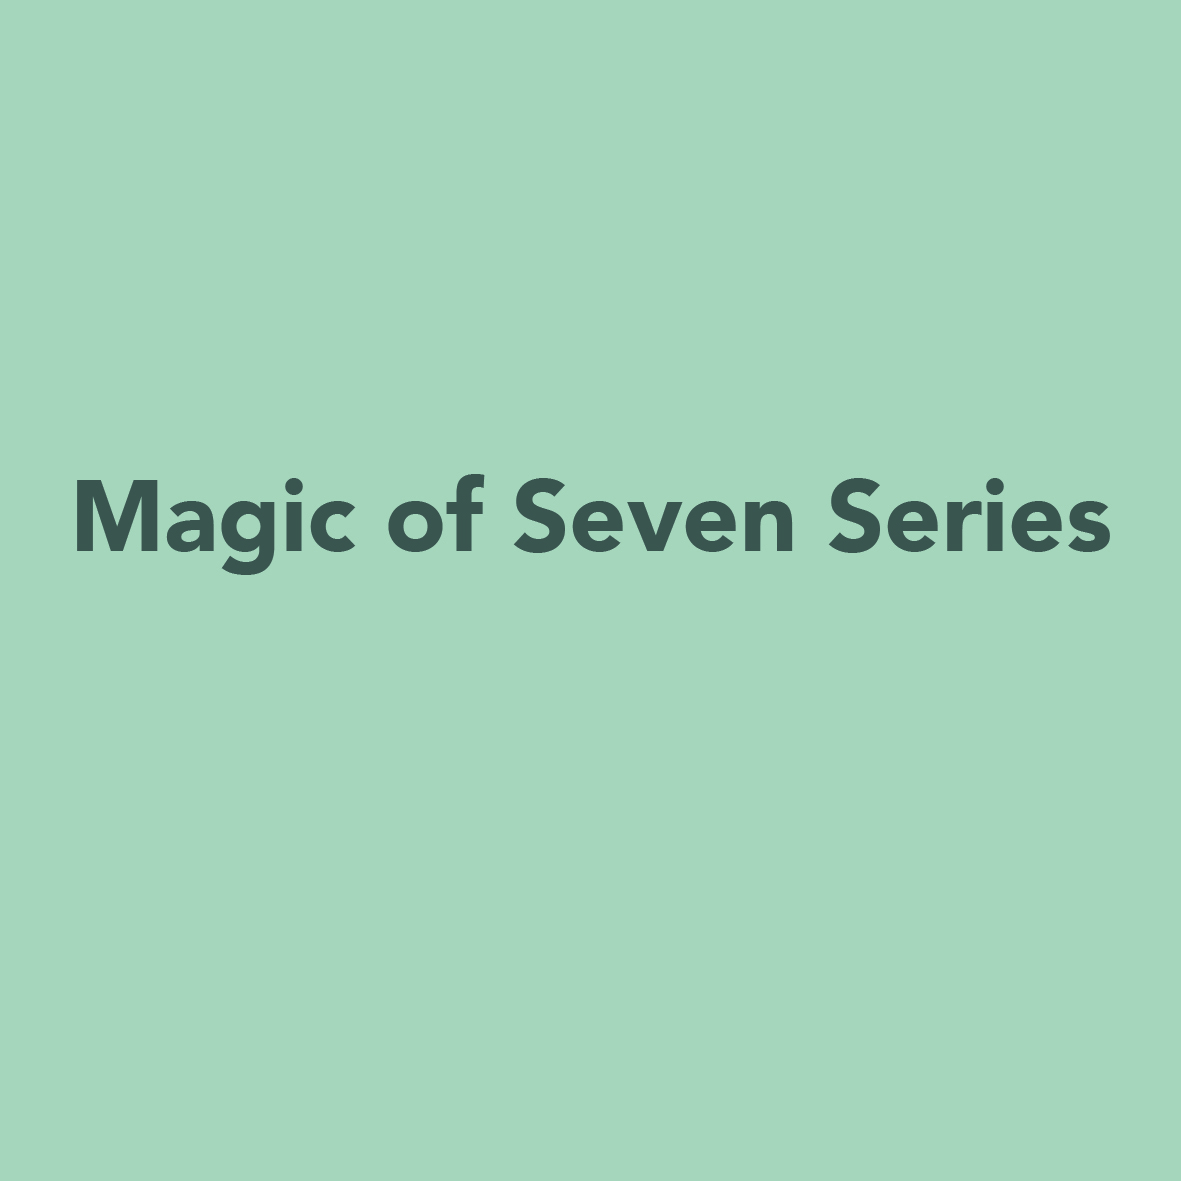 Magic of Seven Series